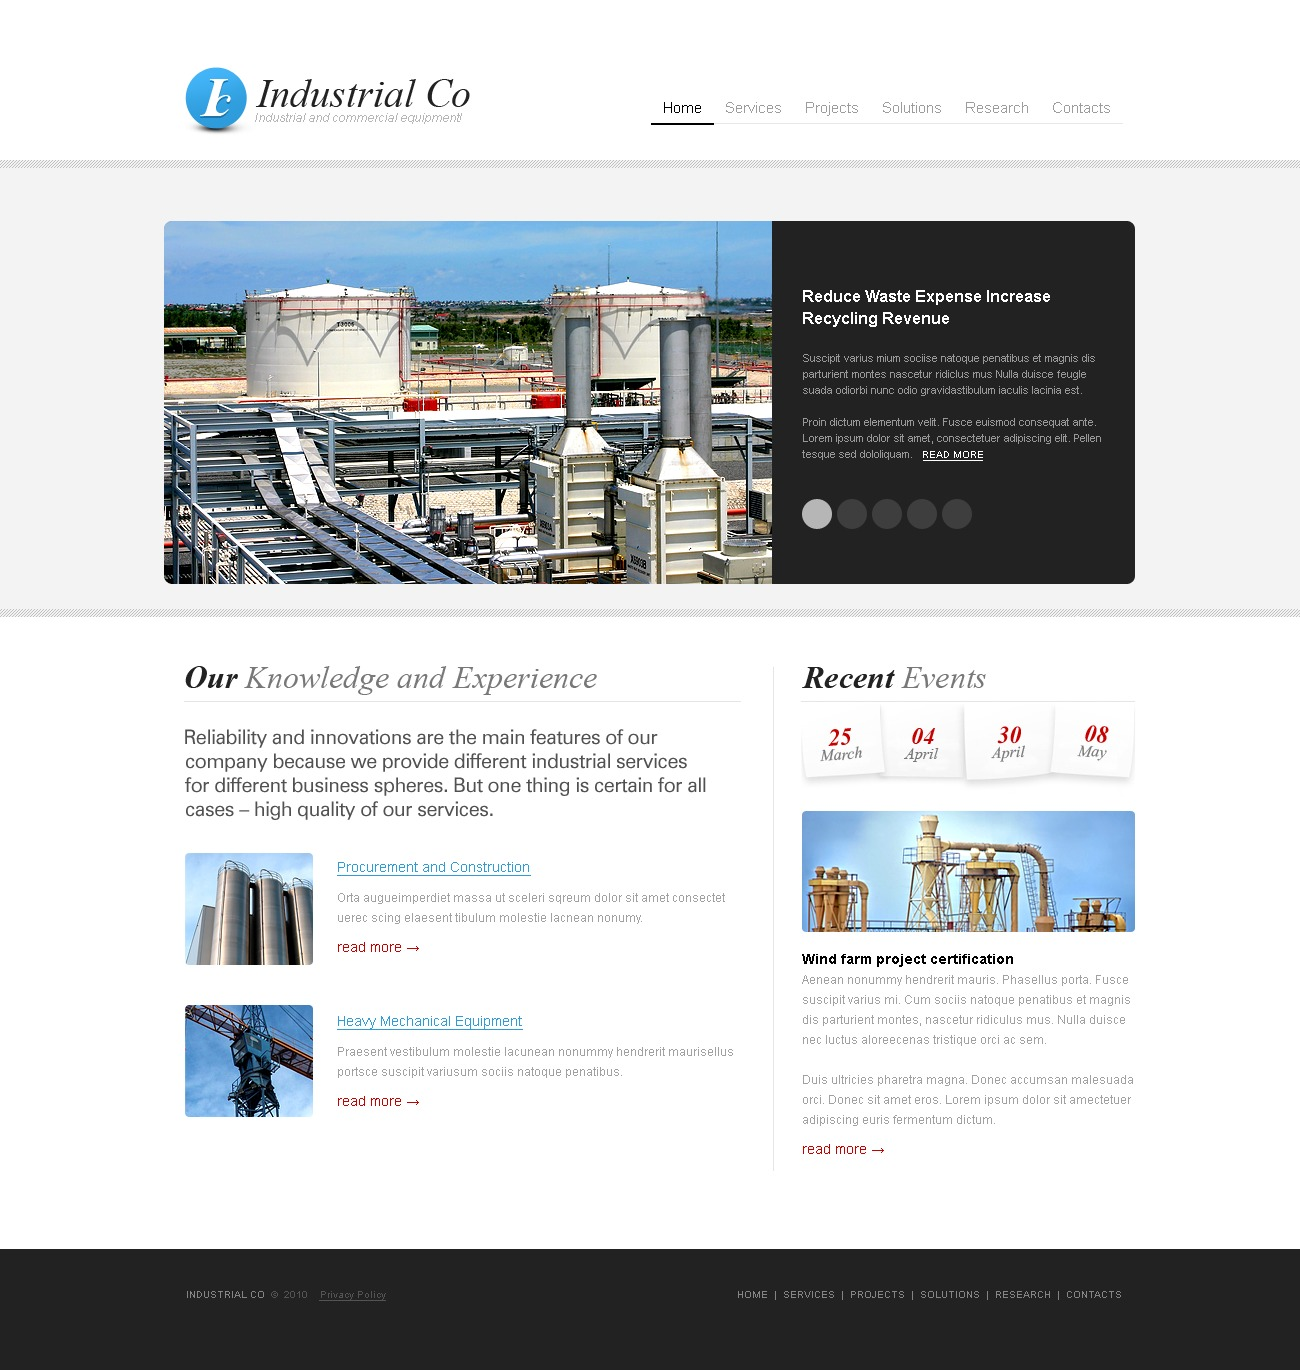 The Industrial Company PSD Design 54075, one of the best PSD templates of its kind (industrial, flash 8, wide), also known as industrial company PSD template, construction PSD template, architecture PSD template, buildings PSD template, technology PSD template, engines PSD template, innovation PSD template, skyscrapers PSD template, projects PSD template, constructions PSD template, houses PSD template, work PSD template, team PSD template, strategy PSD template, services PSD template, support PSD template, planning solutions PSD template, non-standard PSD template, creative ideas PSD template, catalog PSD template, windows PSD template, doors PSD template, equipment PSD template, car and related with industrial company, construction, architecture, buildings, technology, engines, innovation, skyscrapers, projects, constructions, houses, work, team, strategy, services, support, planning solutions, non-standard, creative ideas, catalog, windows, doors, equipment, car, etc.